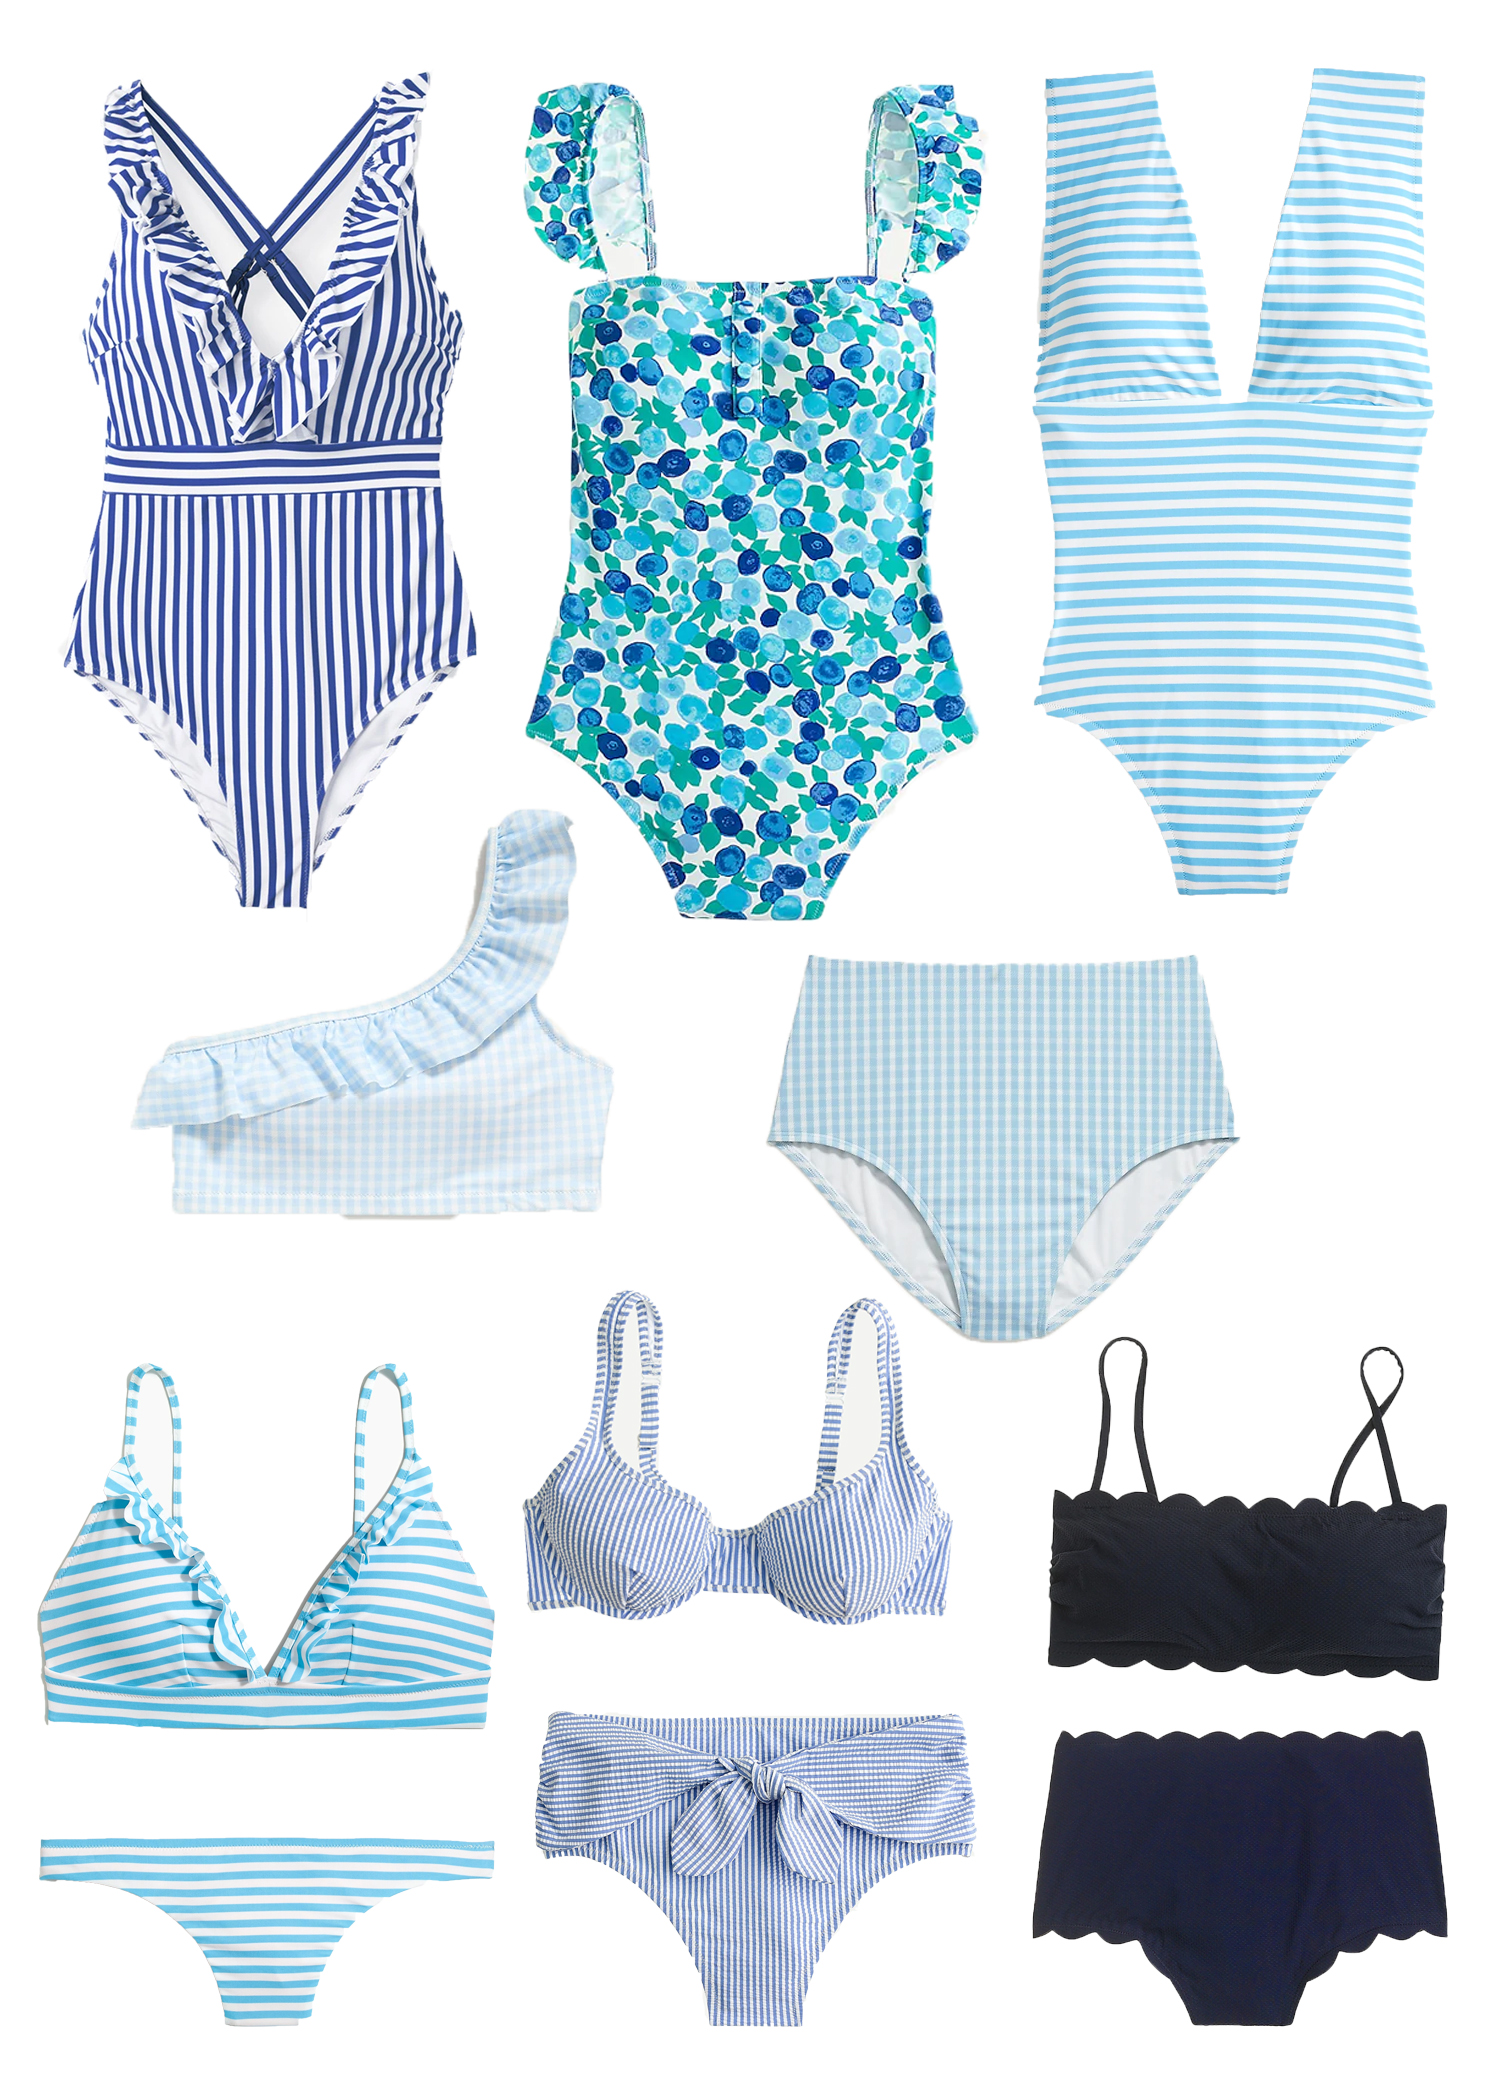 Ruffle One Shoulder Gingham Swimsuit Top / Blue and White Swimsuits / High Waisted Swimsuit / Beach Vacation Outfit / Summer Swimsuit / Sunshine Style - A Florida Based Fashion and Lifestyle Blog by Katie